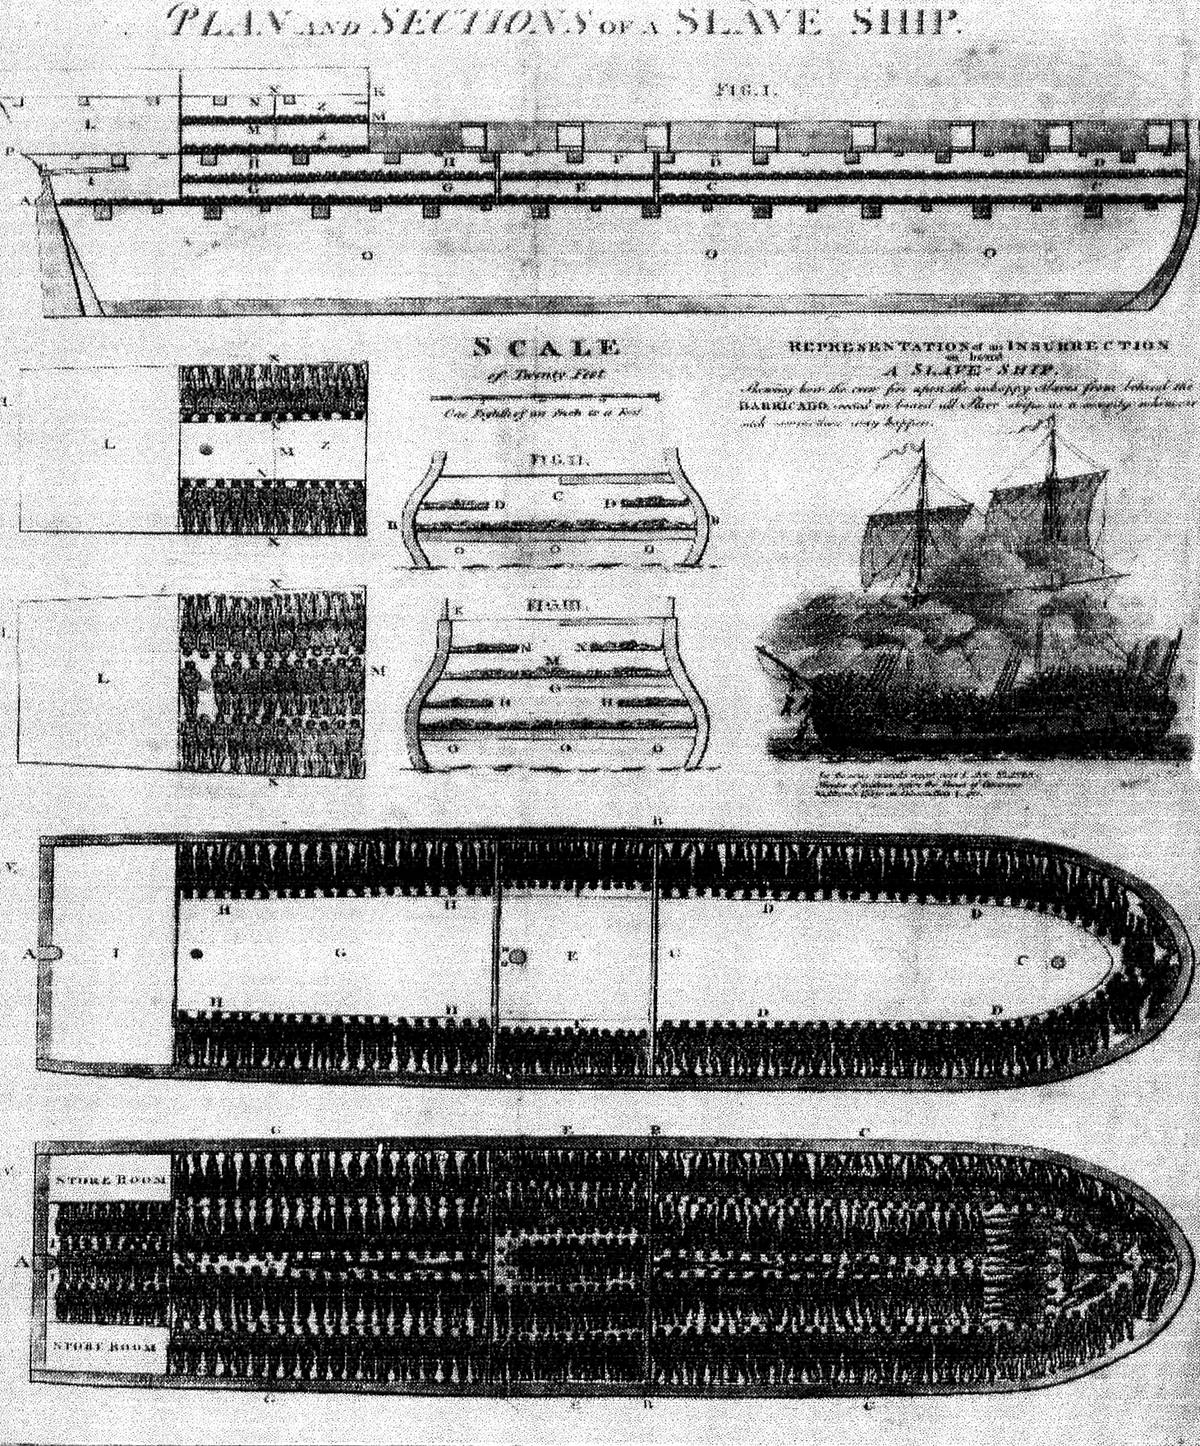 an overview of the conditions on the boats during the middle passage Slave ship diagram slave ships and the middle passage contributed by brendan wolfe the slave ship was the means by which nearly 125 million enslaved africans were transported from africa to the americas between 1500 and 1866 leaving from its home port in europe, a typical ship made its first passage to the west coast of africa, trading goods for a full cargo of slaves—people who had.